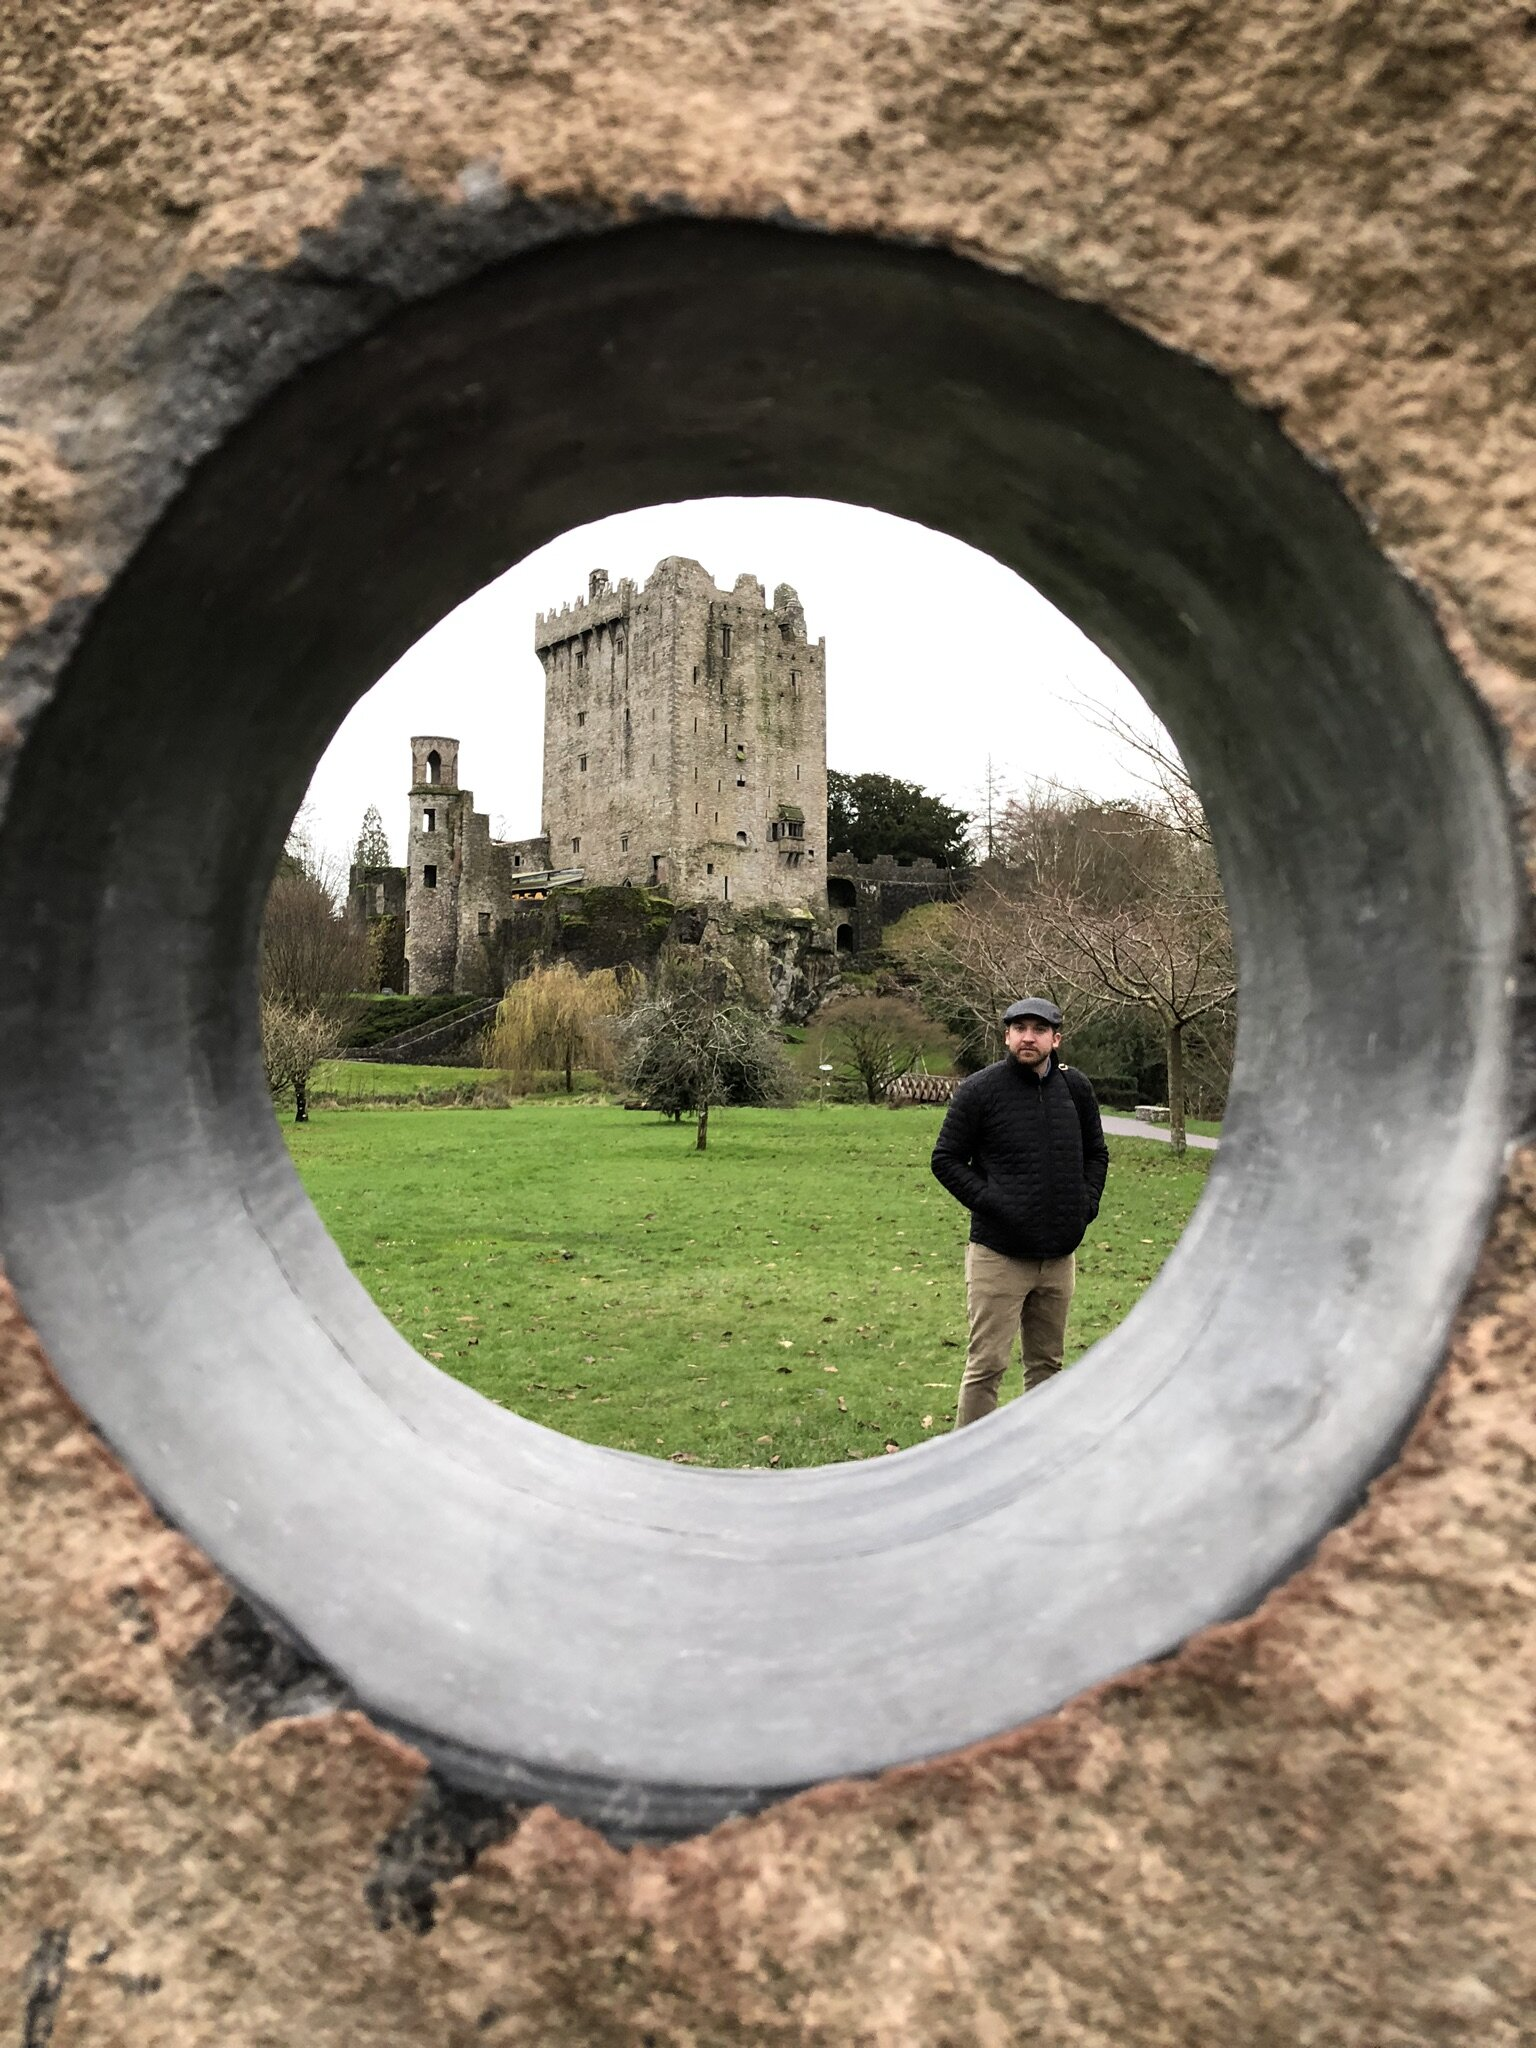 Visiting the Blarney Castle in Cork, Ireland.